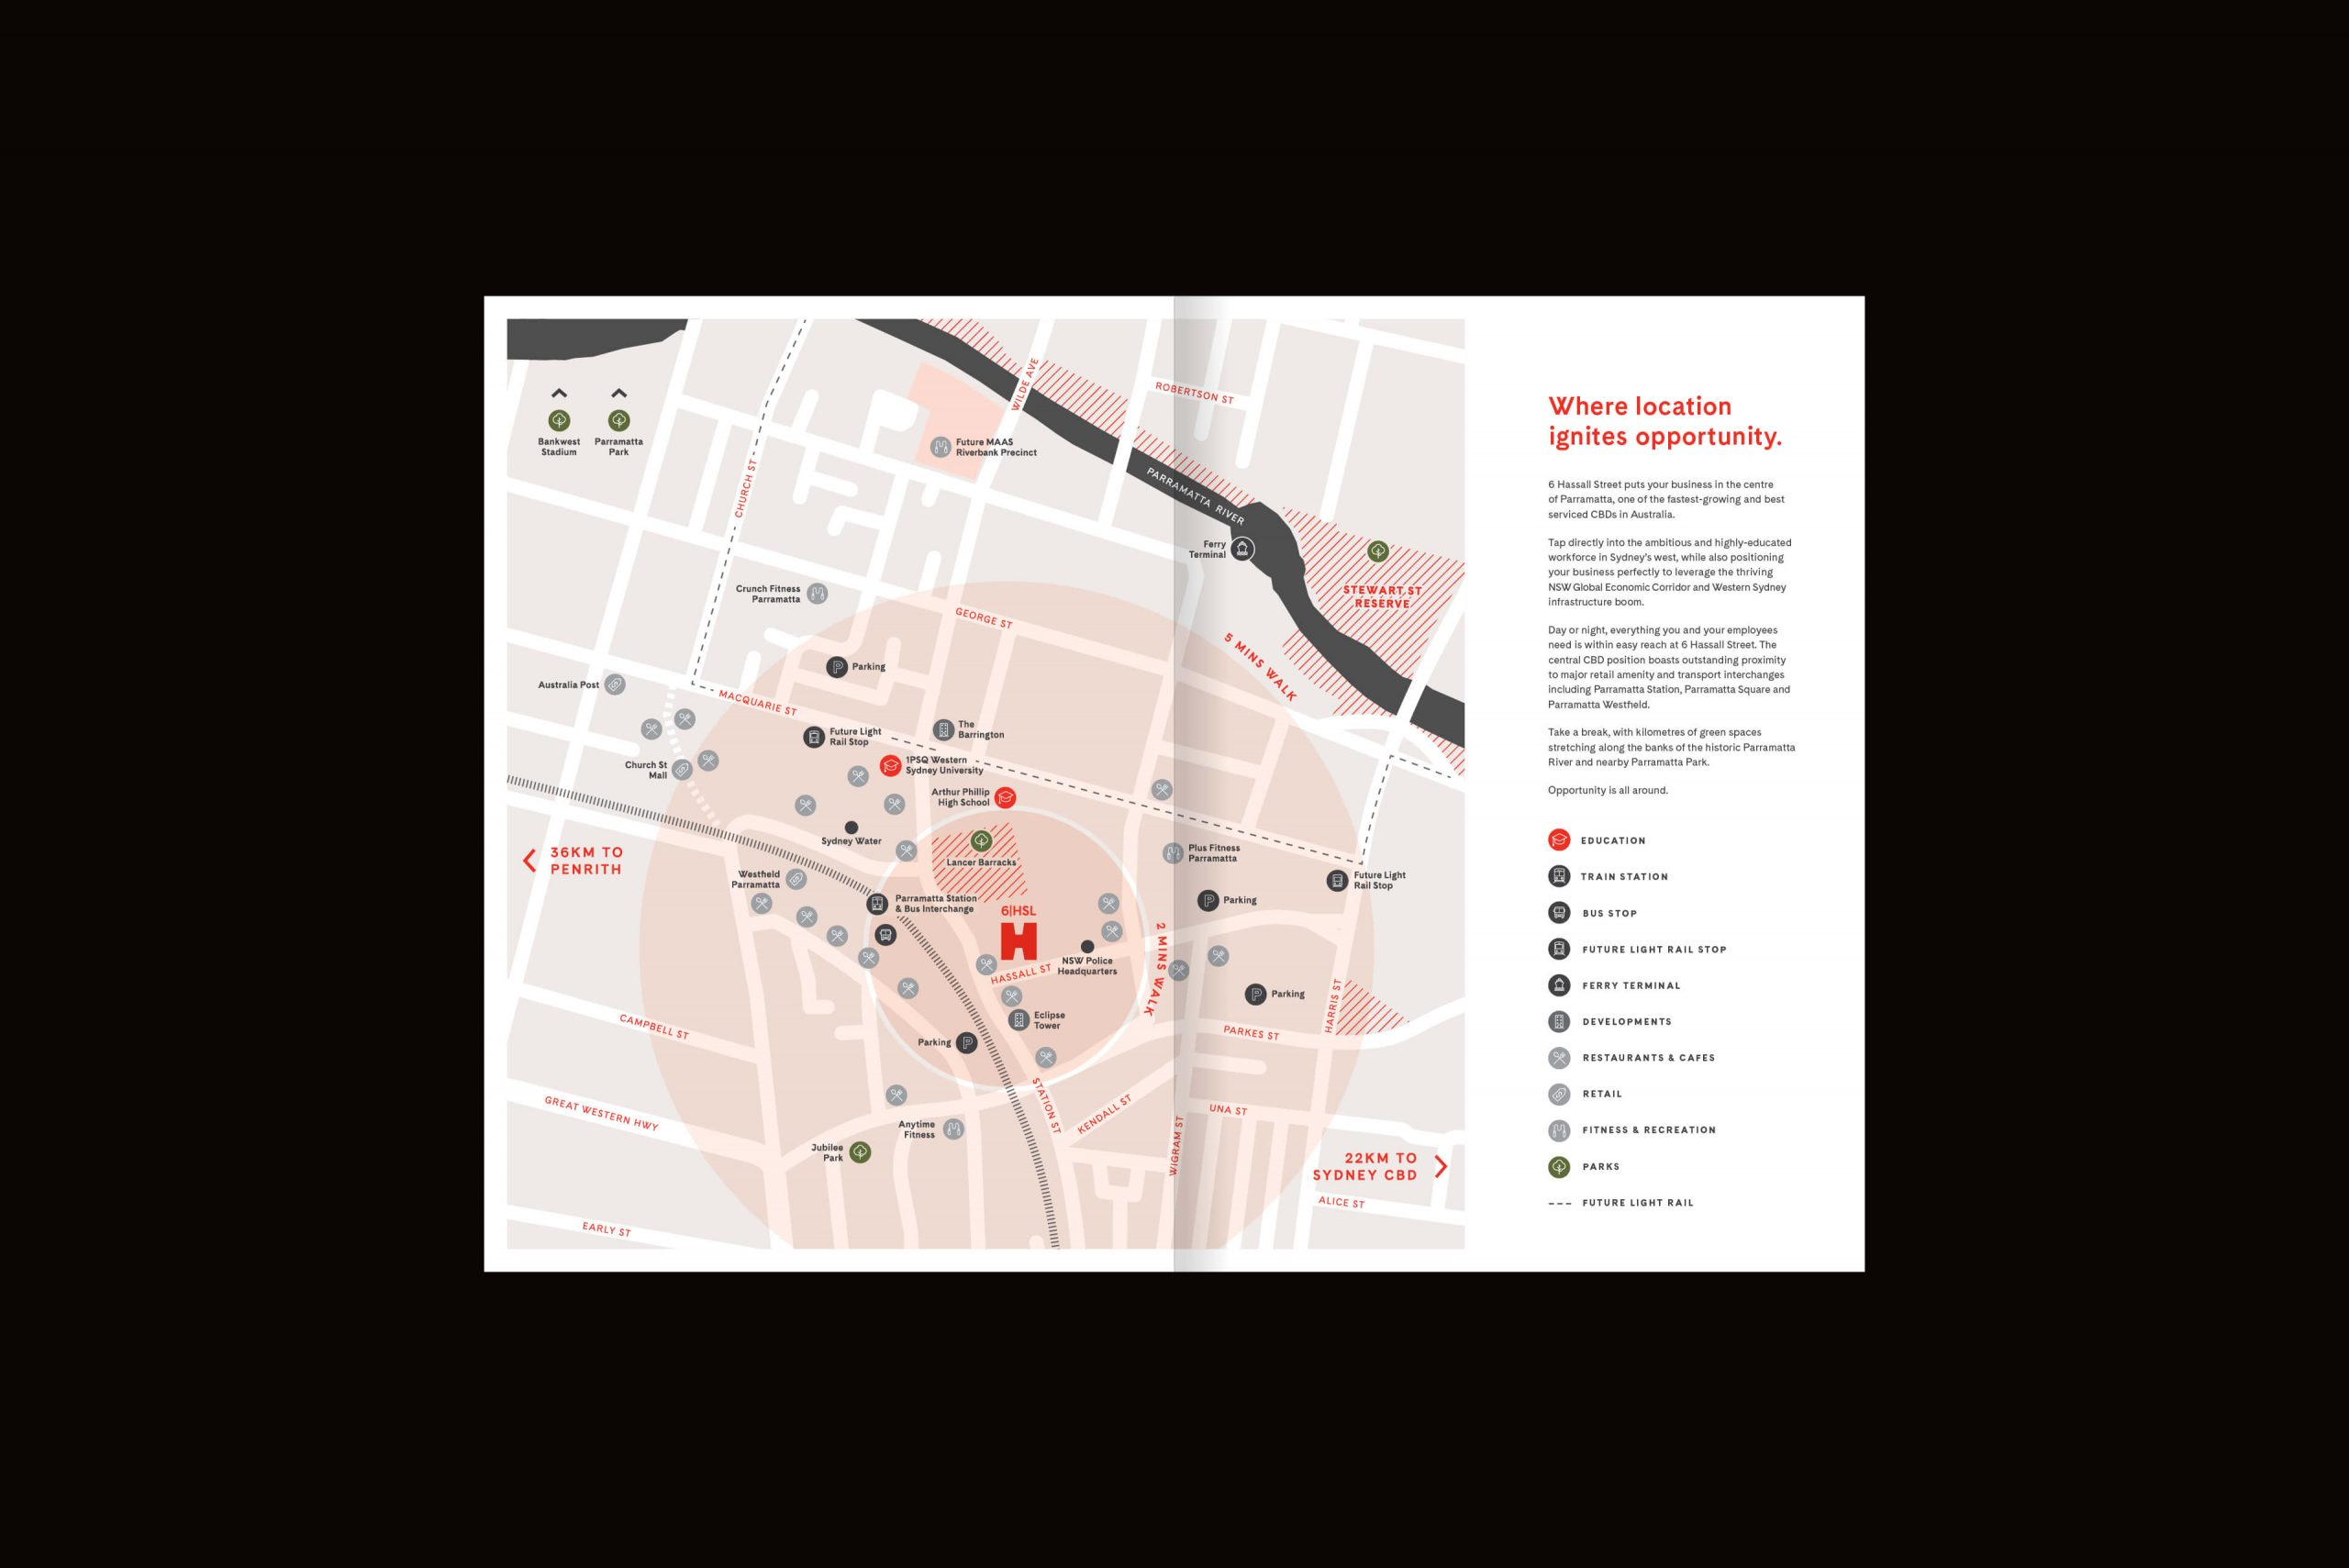 6 Hassall St Property Brand for Charter Hall - Brochure Spread 4